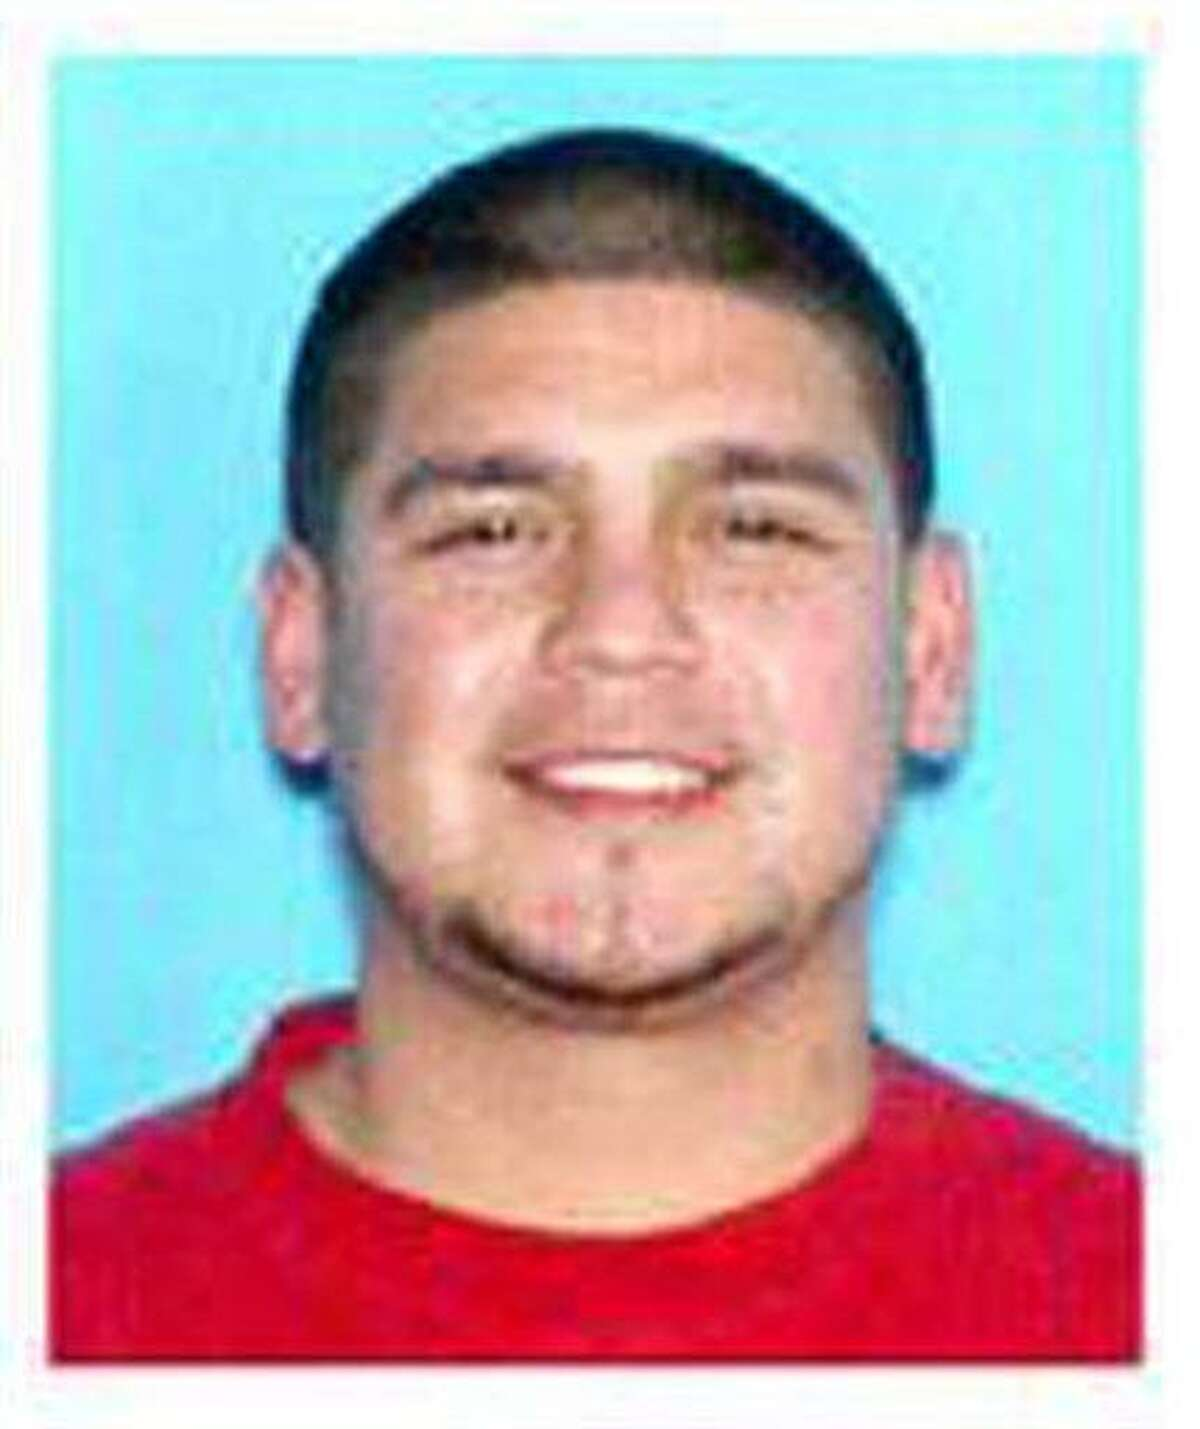 This photo provided by the Colorado Springs Police Department shows Jose Garcia, 29, who was arrested in Colorado Springs, Colo., Friday in connection with the kidnapping of a 9-year-old girl in Pueblo, Colo., Jan. 19. The girl escaped the apparent kidnapper and called 911 herself from a convenience store in Colorado Springs on Friday, police said. Associated Press